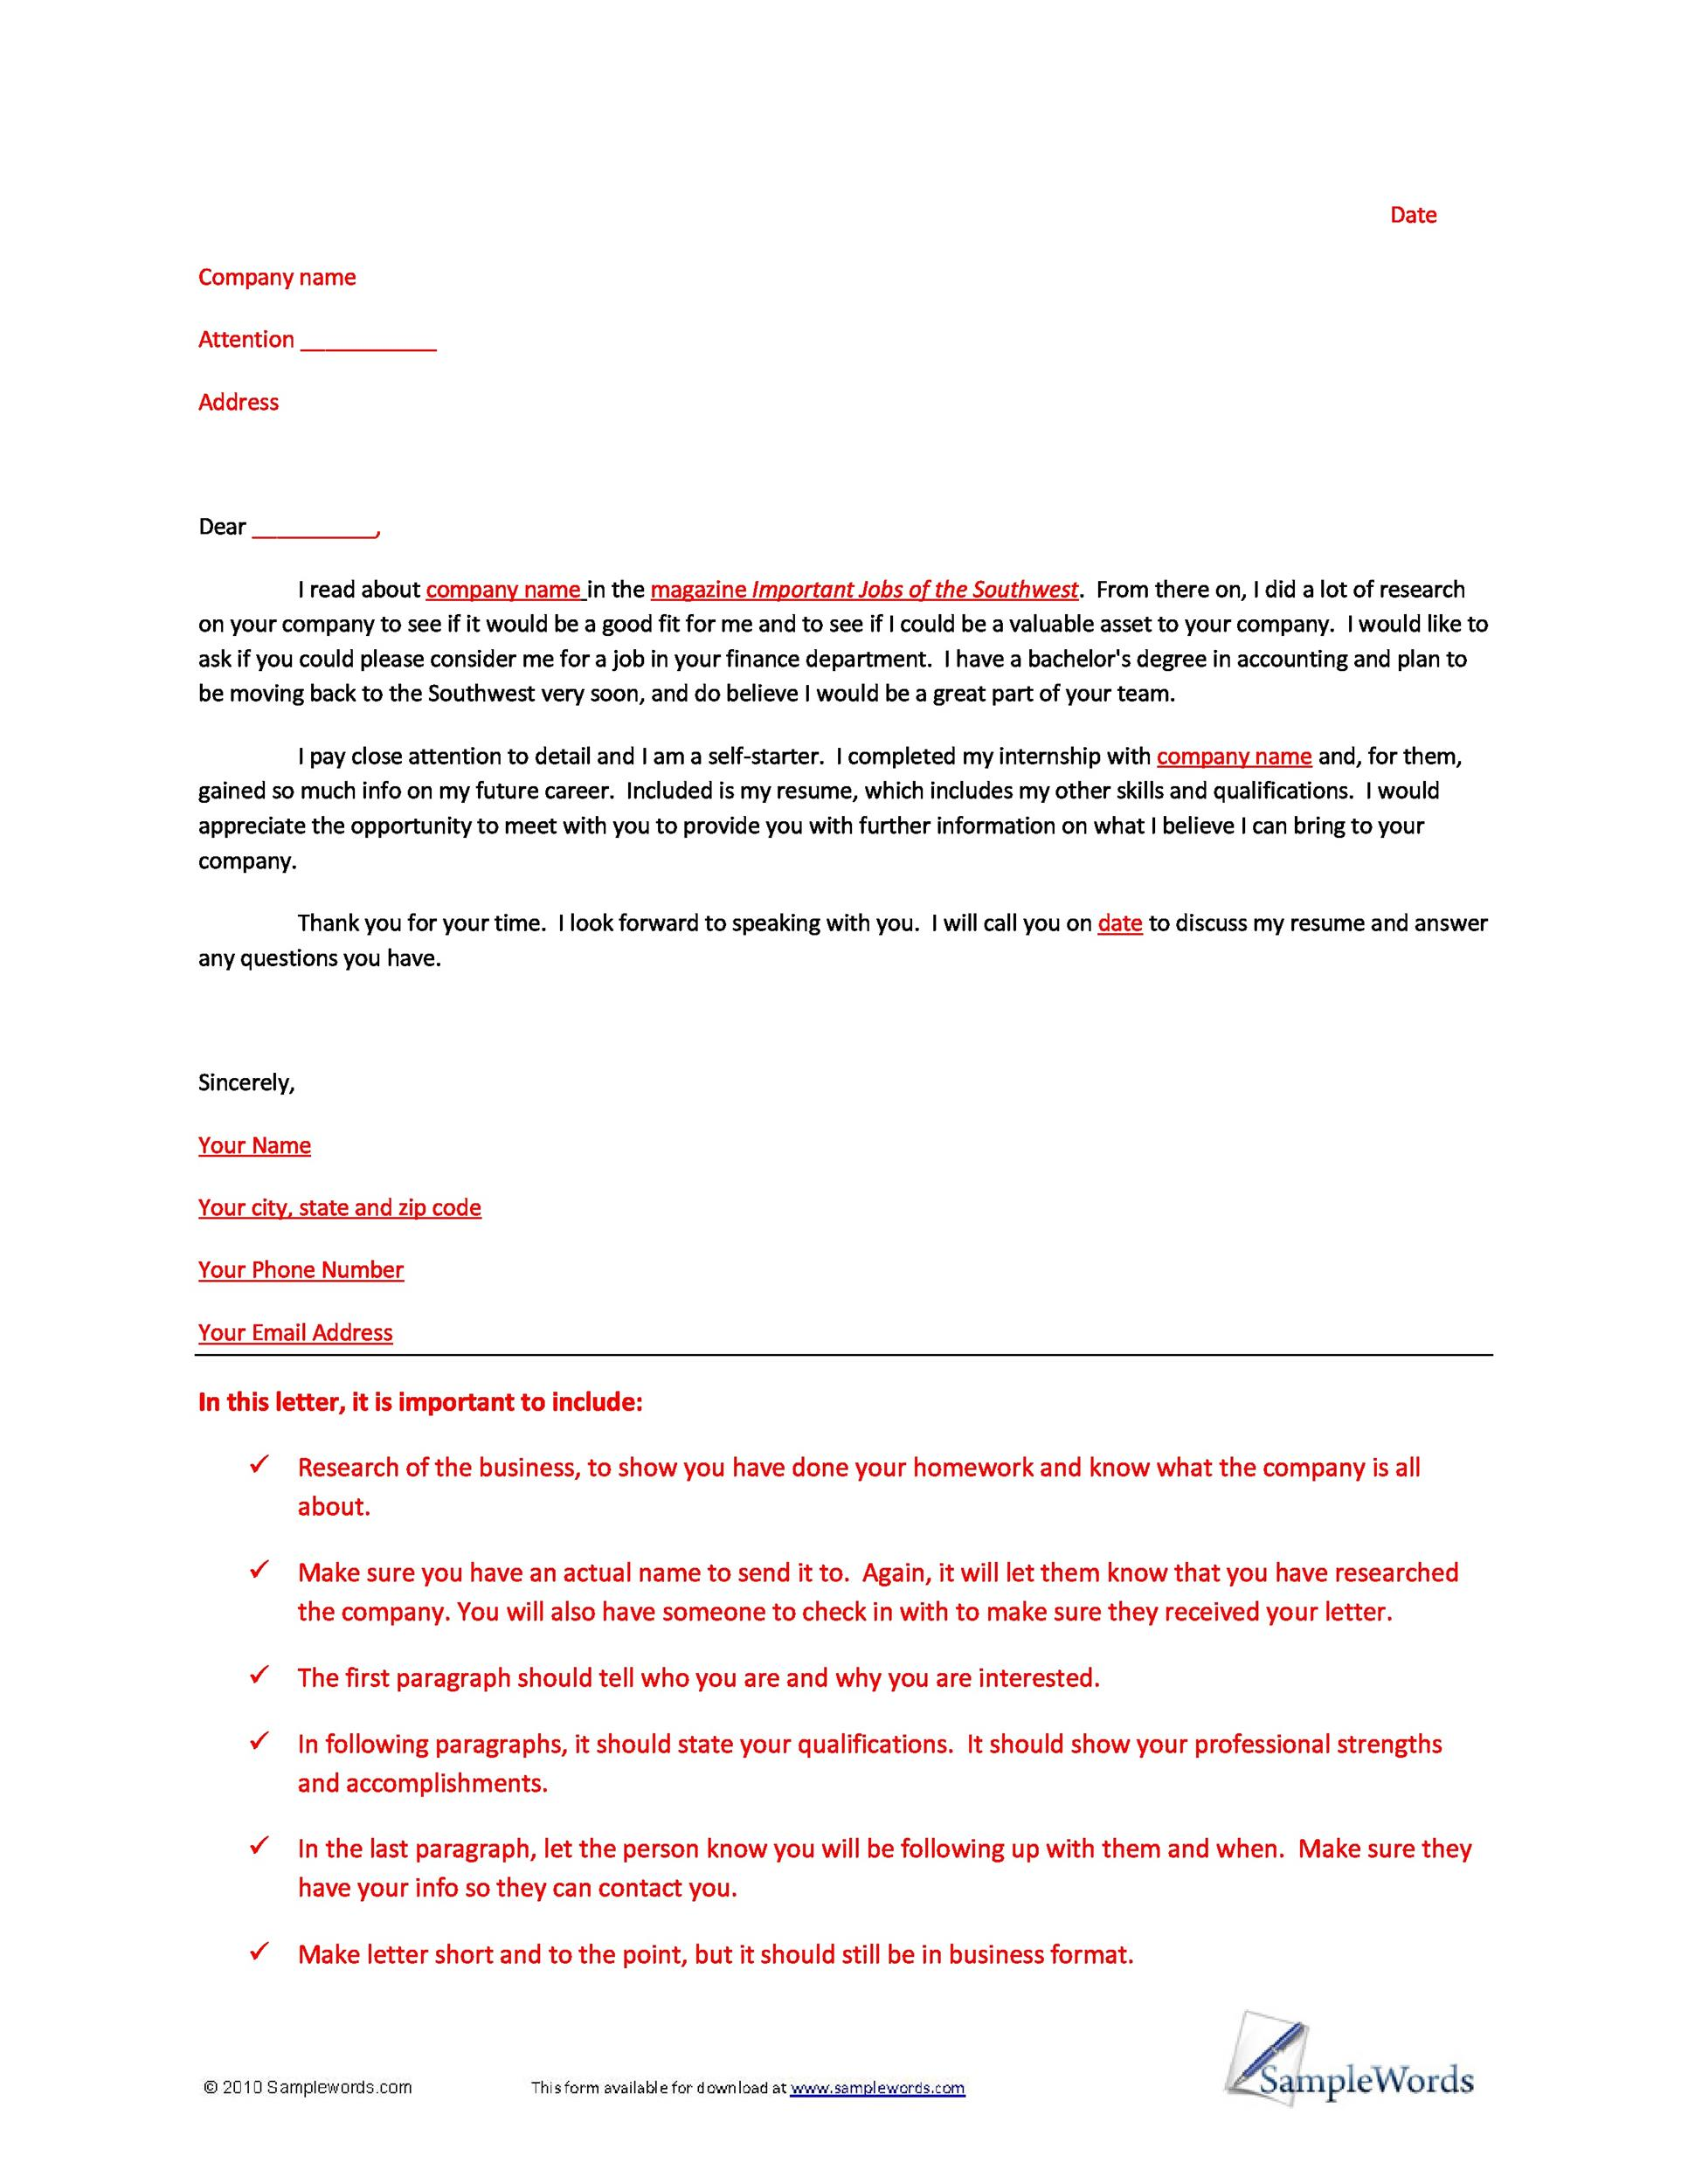 30 amazing letter of interest samples templates letter of interest 06 mitanshu Choice Image